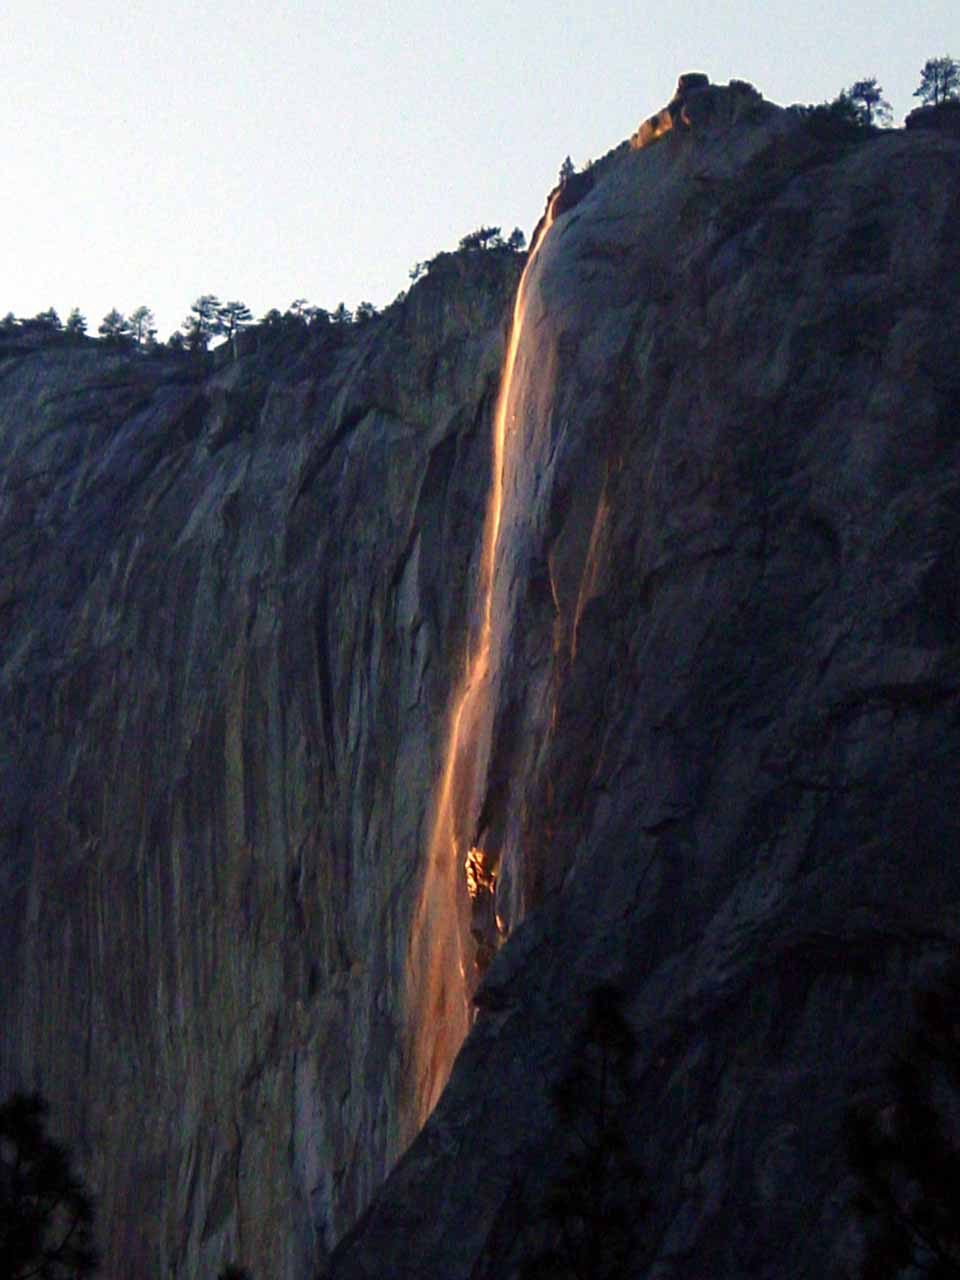 Horsetail Falls from the Northside Drive as seen on our February 24, 2006 attempt